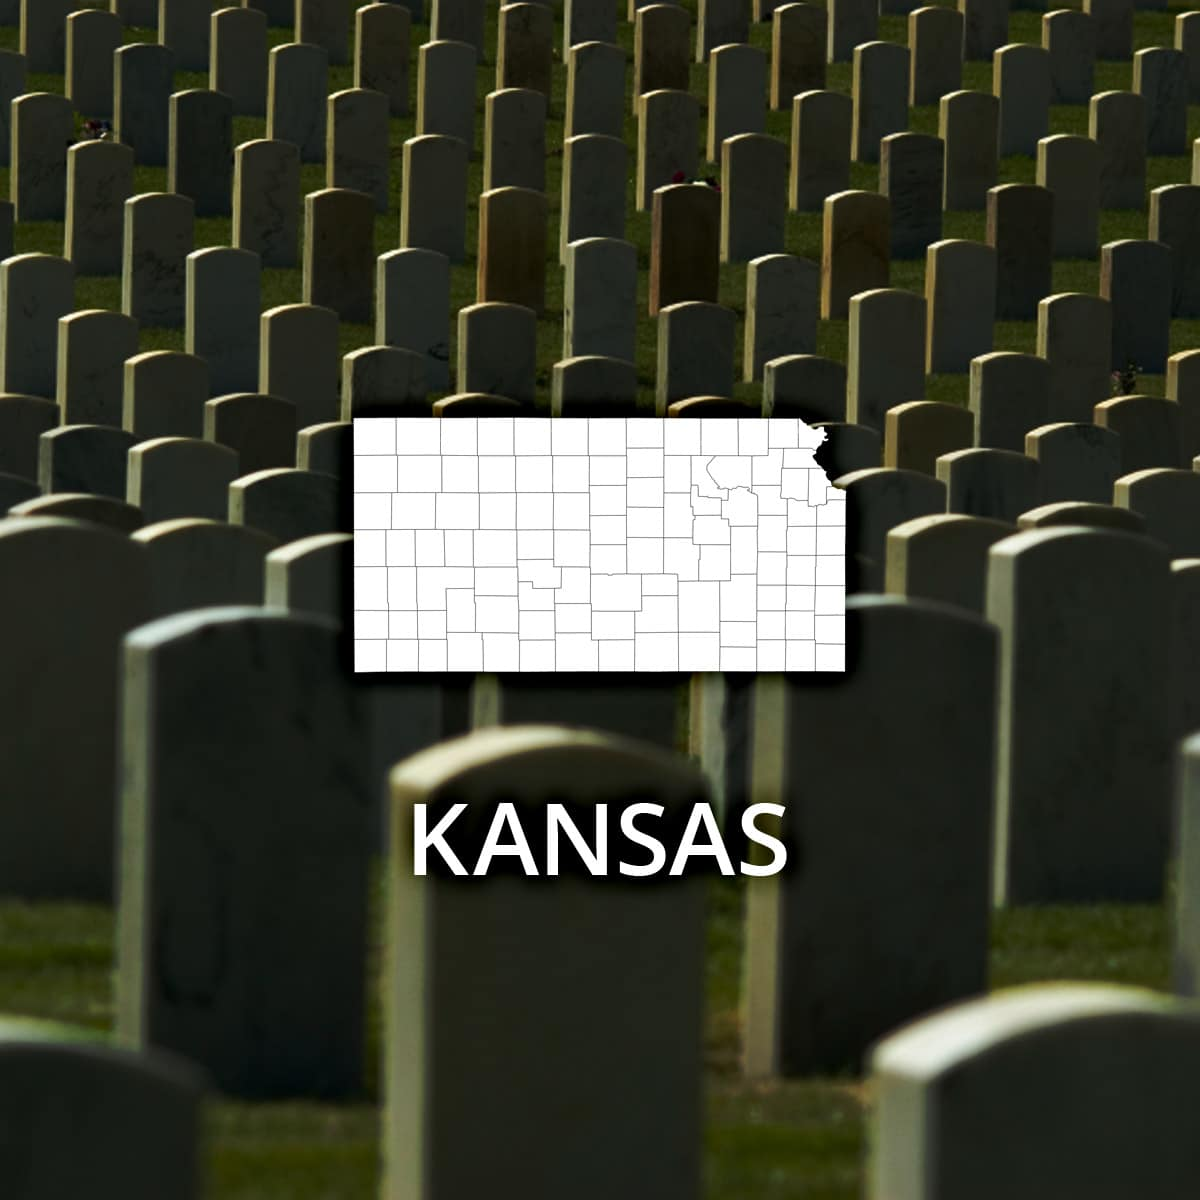 Where to Obtain a Kansas Death Certificate